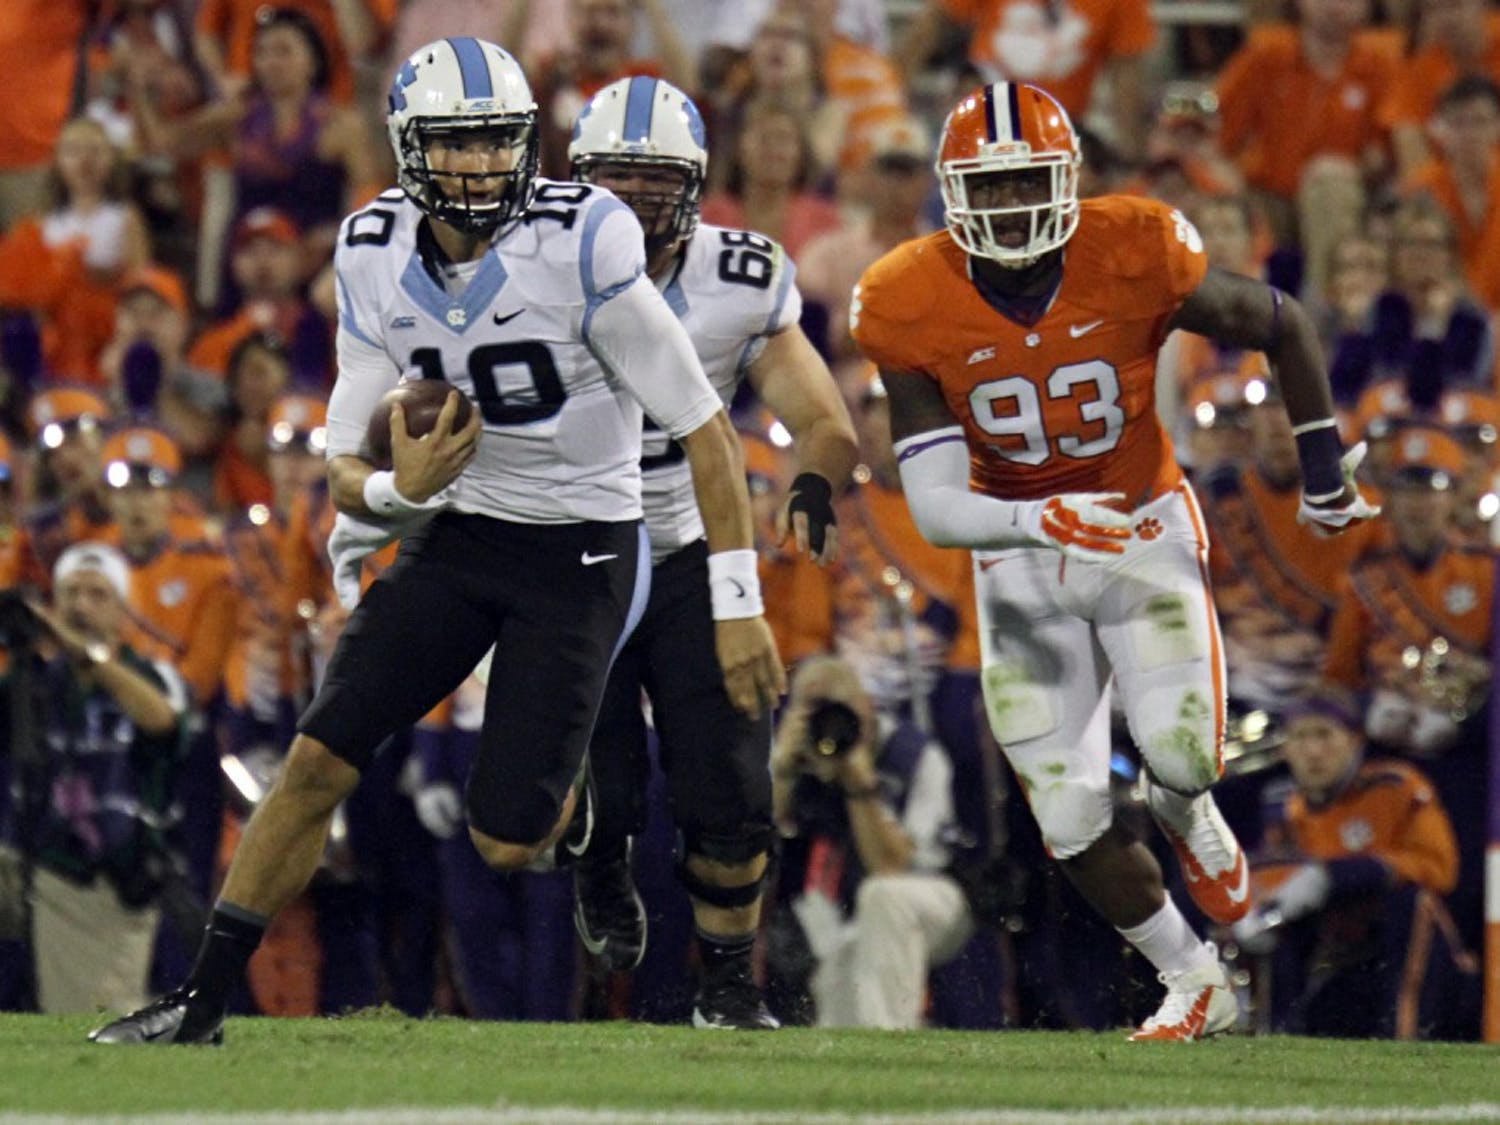 UNC's Mitch Trubisky (10) runs the ball up the middle of the field during the UNC - Clemson game September, 20. Trubisky rushed for 13 yards.